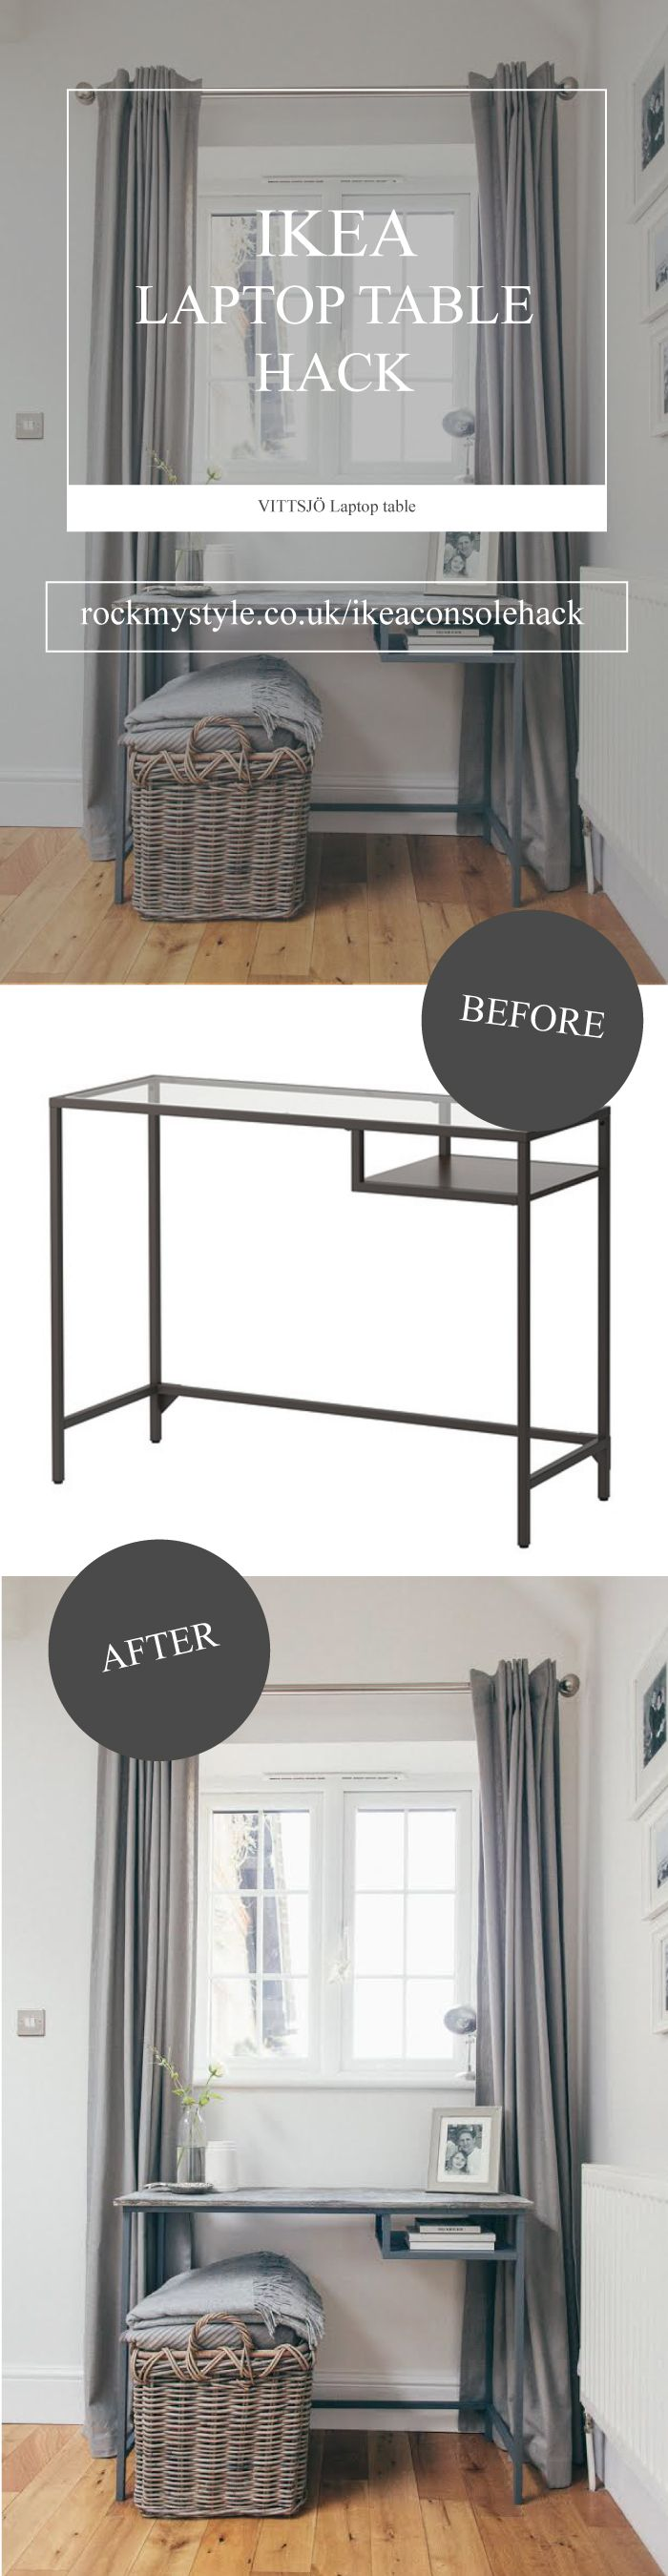 Superbe A Concrete Console Table From The Ikea Vittsjo Laptop Table | Full Tutorial  On Rockmystyle.co.uk